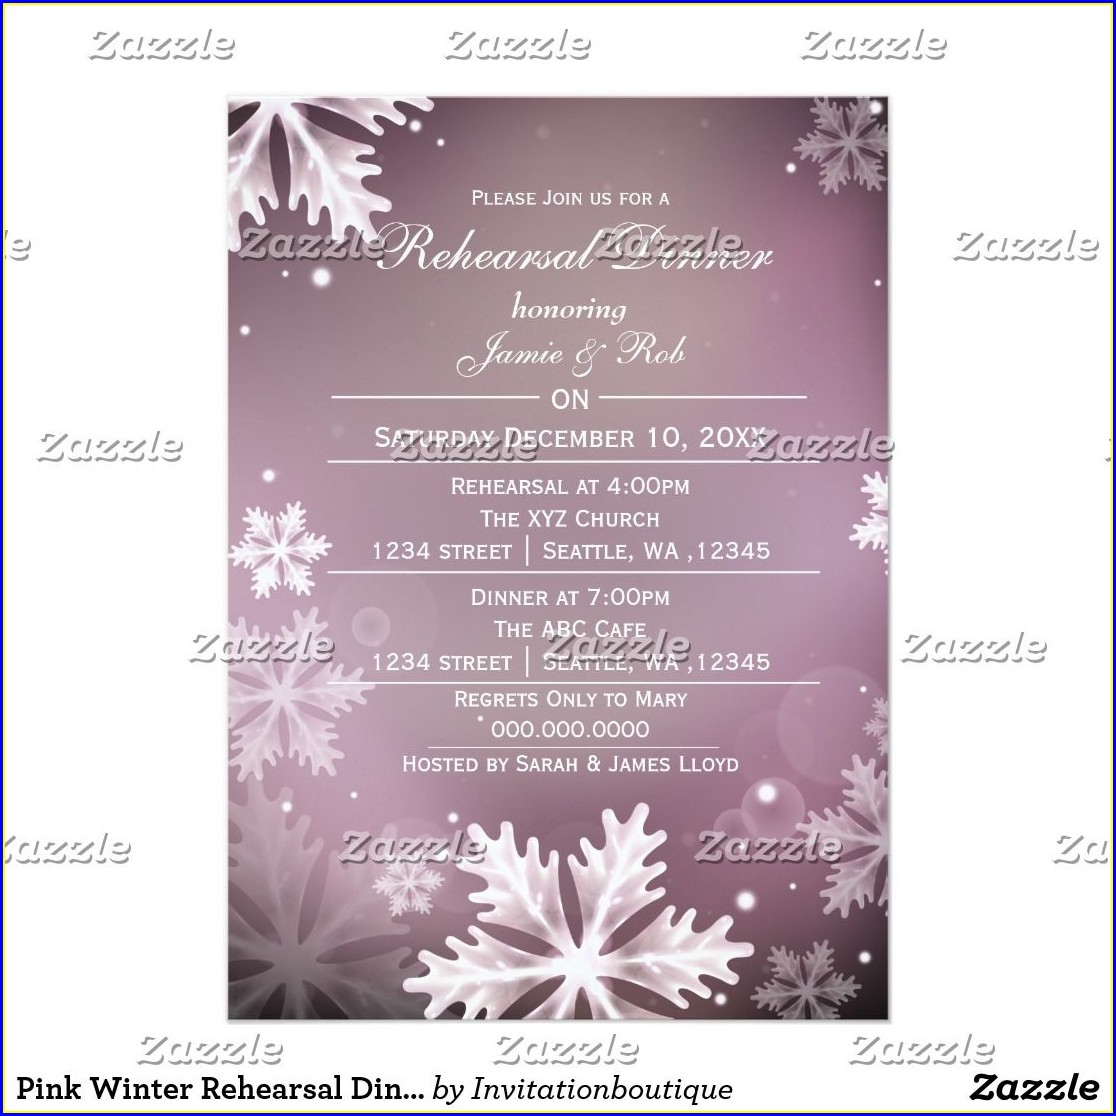 Zazzle Rehearsal Dinner Invitations